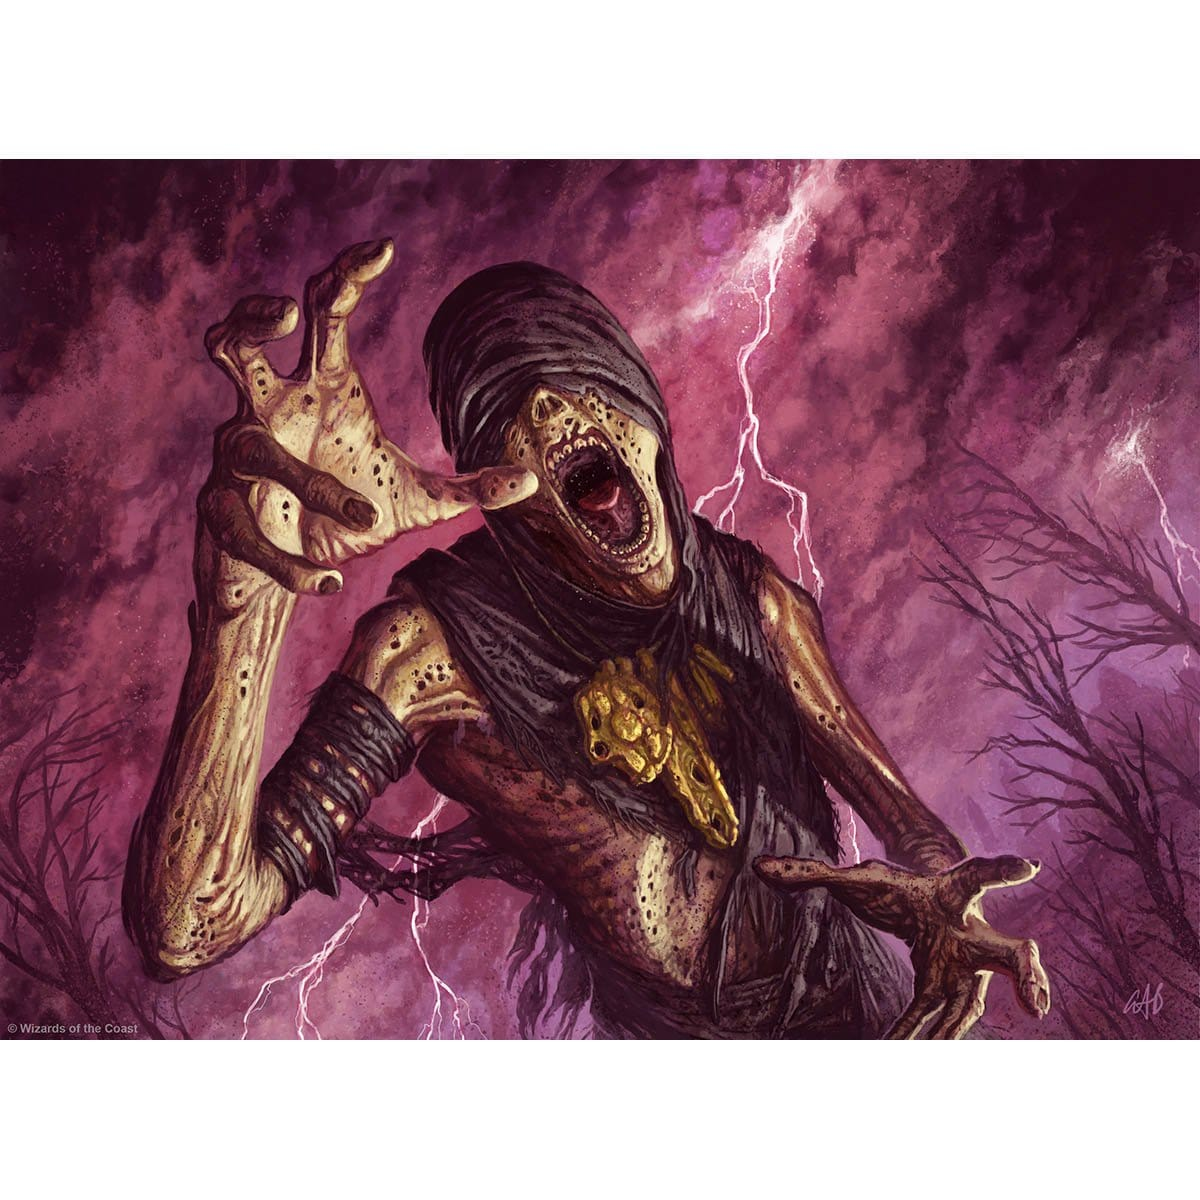 Festering Mummy Print - Print - Original Magic Art - Accessories for Magic the Gathering and other card games